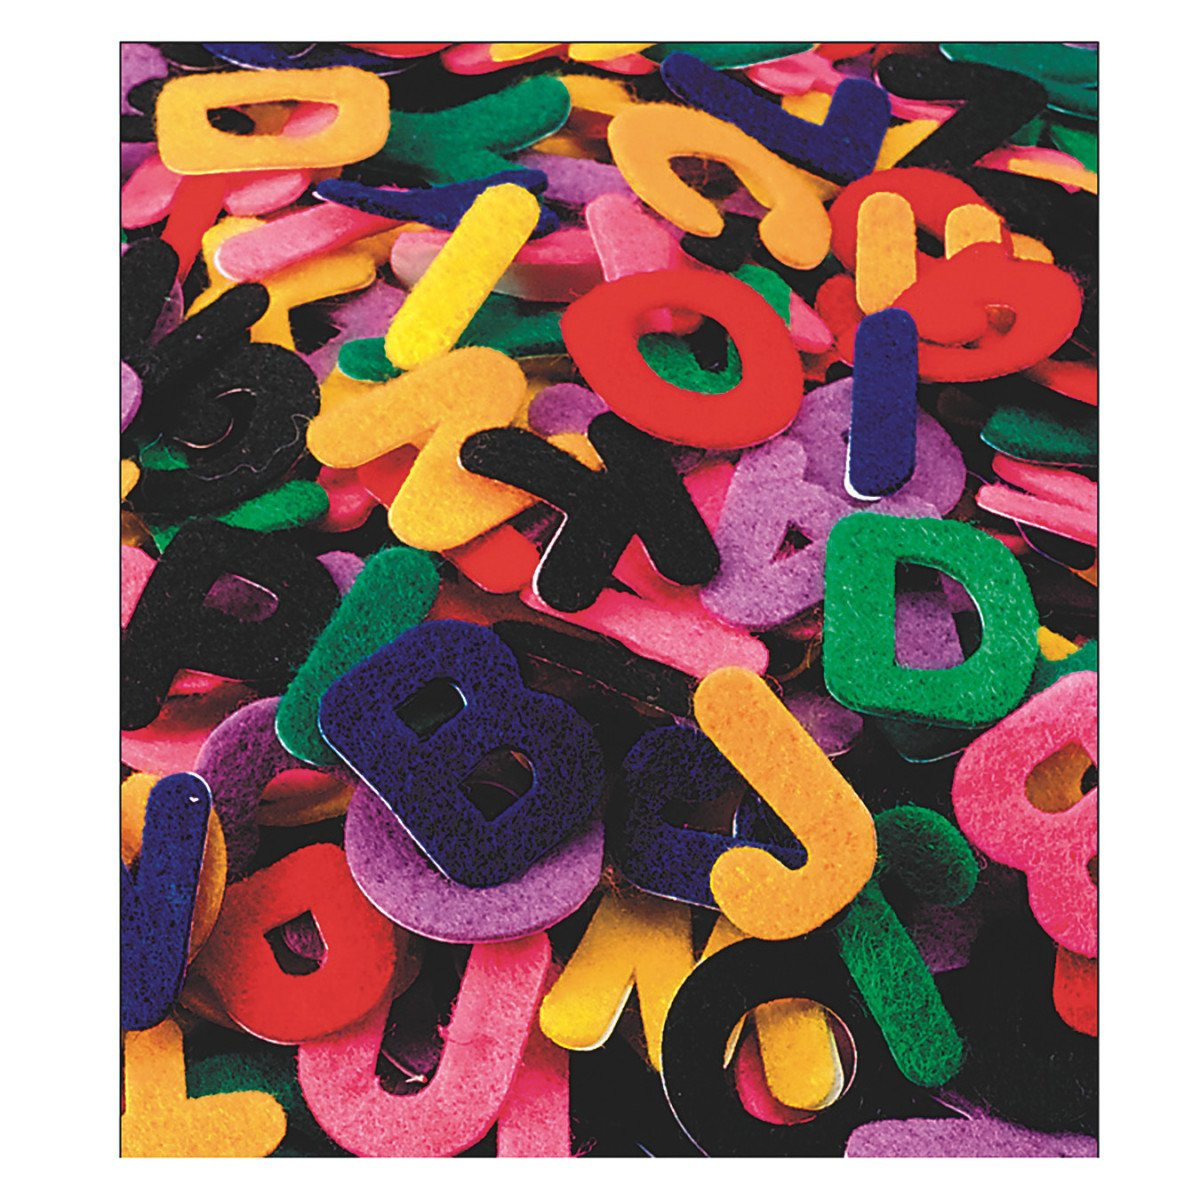 S&S Worldwide Felt Adhesive Letters, 1'' (pack of 500)